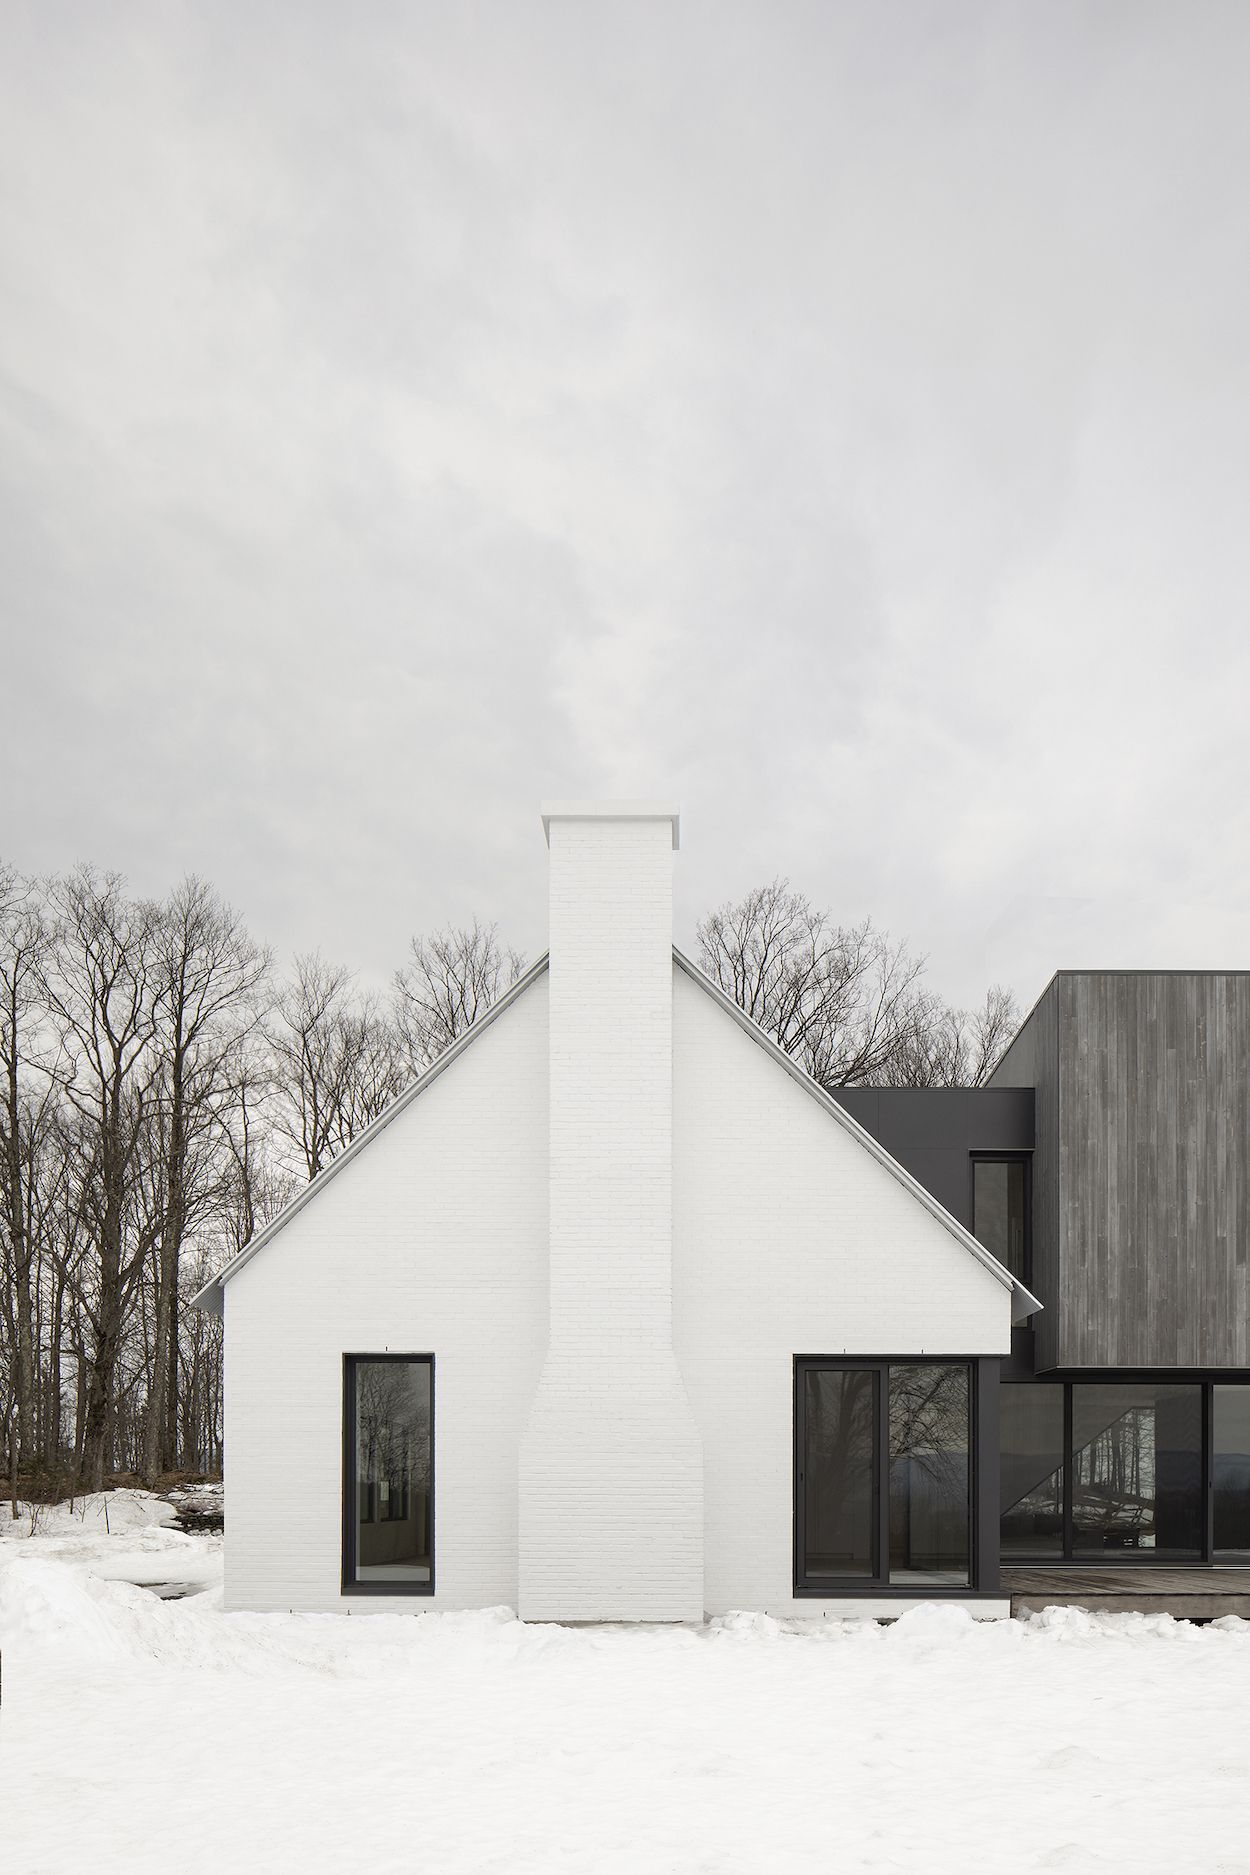 The Minimalist Knowlton Residence in Quebec by TBA - Design Milk